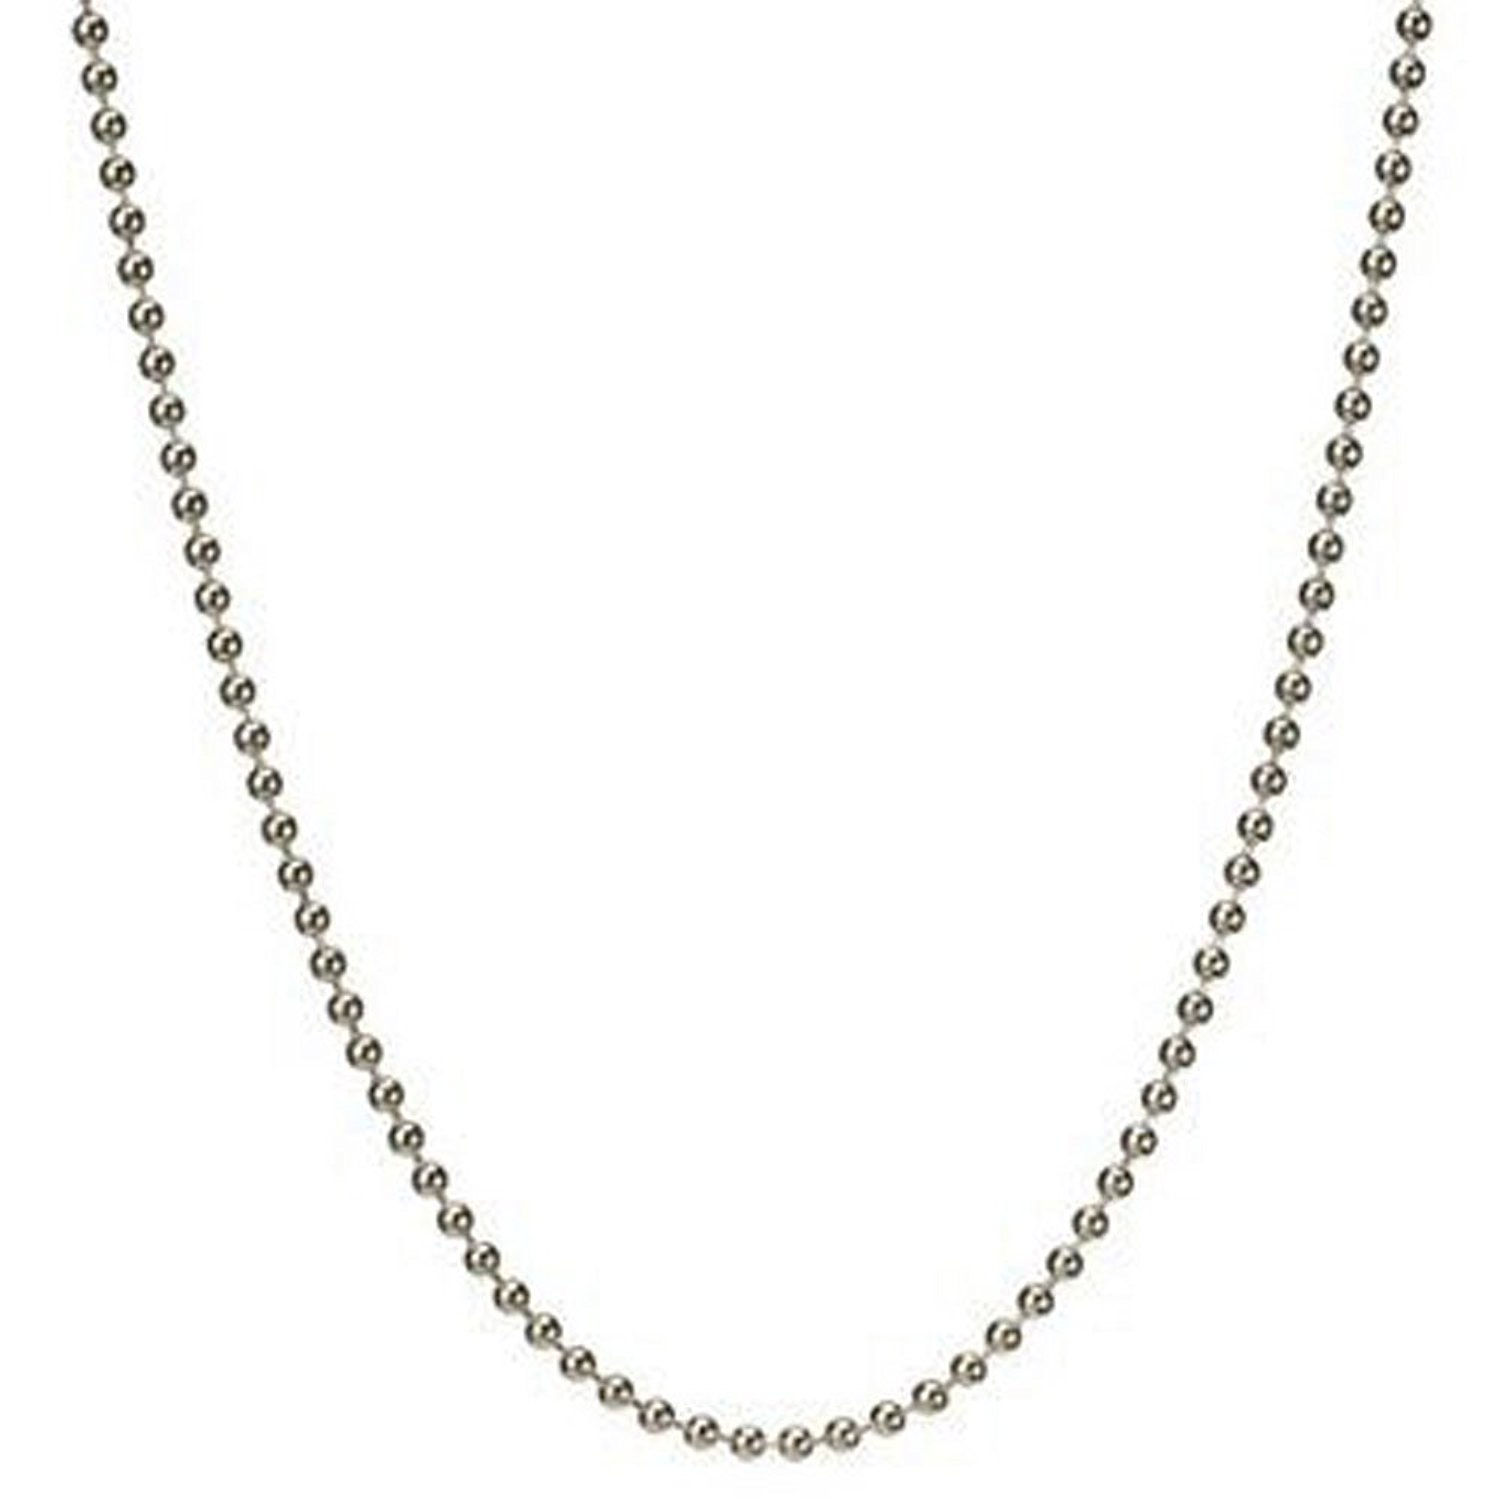 """1.5mm Solid Round Link Ball Beaded Chain Necklace & Bracelet Italian .925 Sterling Silver 7"""", 8"""", 14"""", 16"""", 18"""", 20"""", 22"""", 24"""", 26"""", 30"""", 36"""" inches - 150 Gauge (Nickel Free)"""